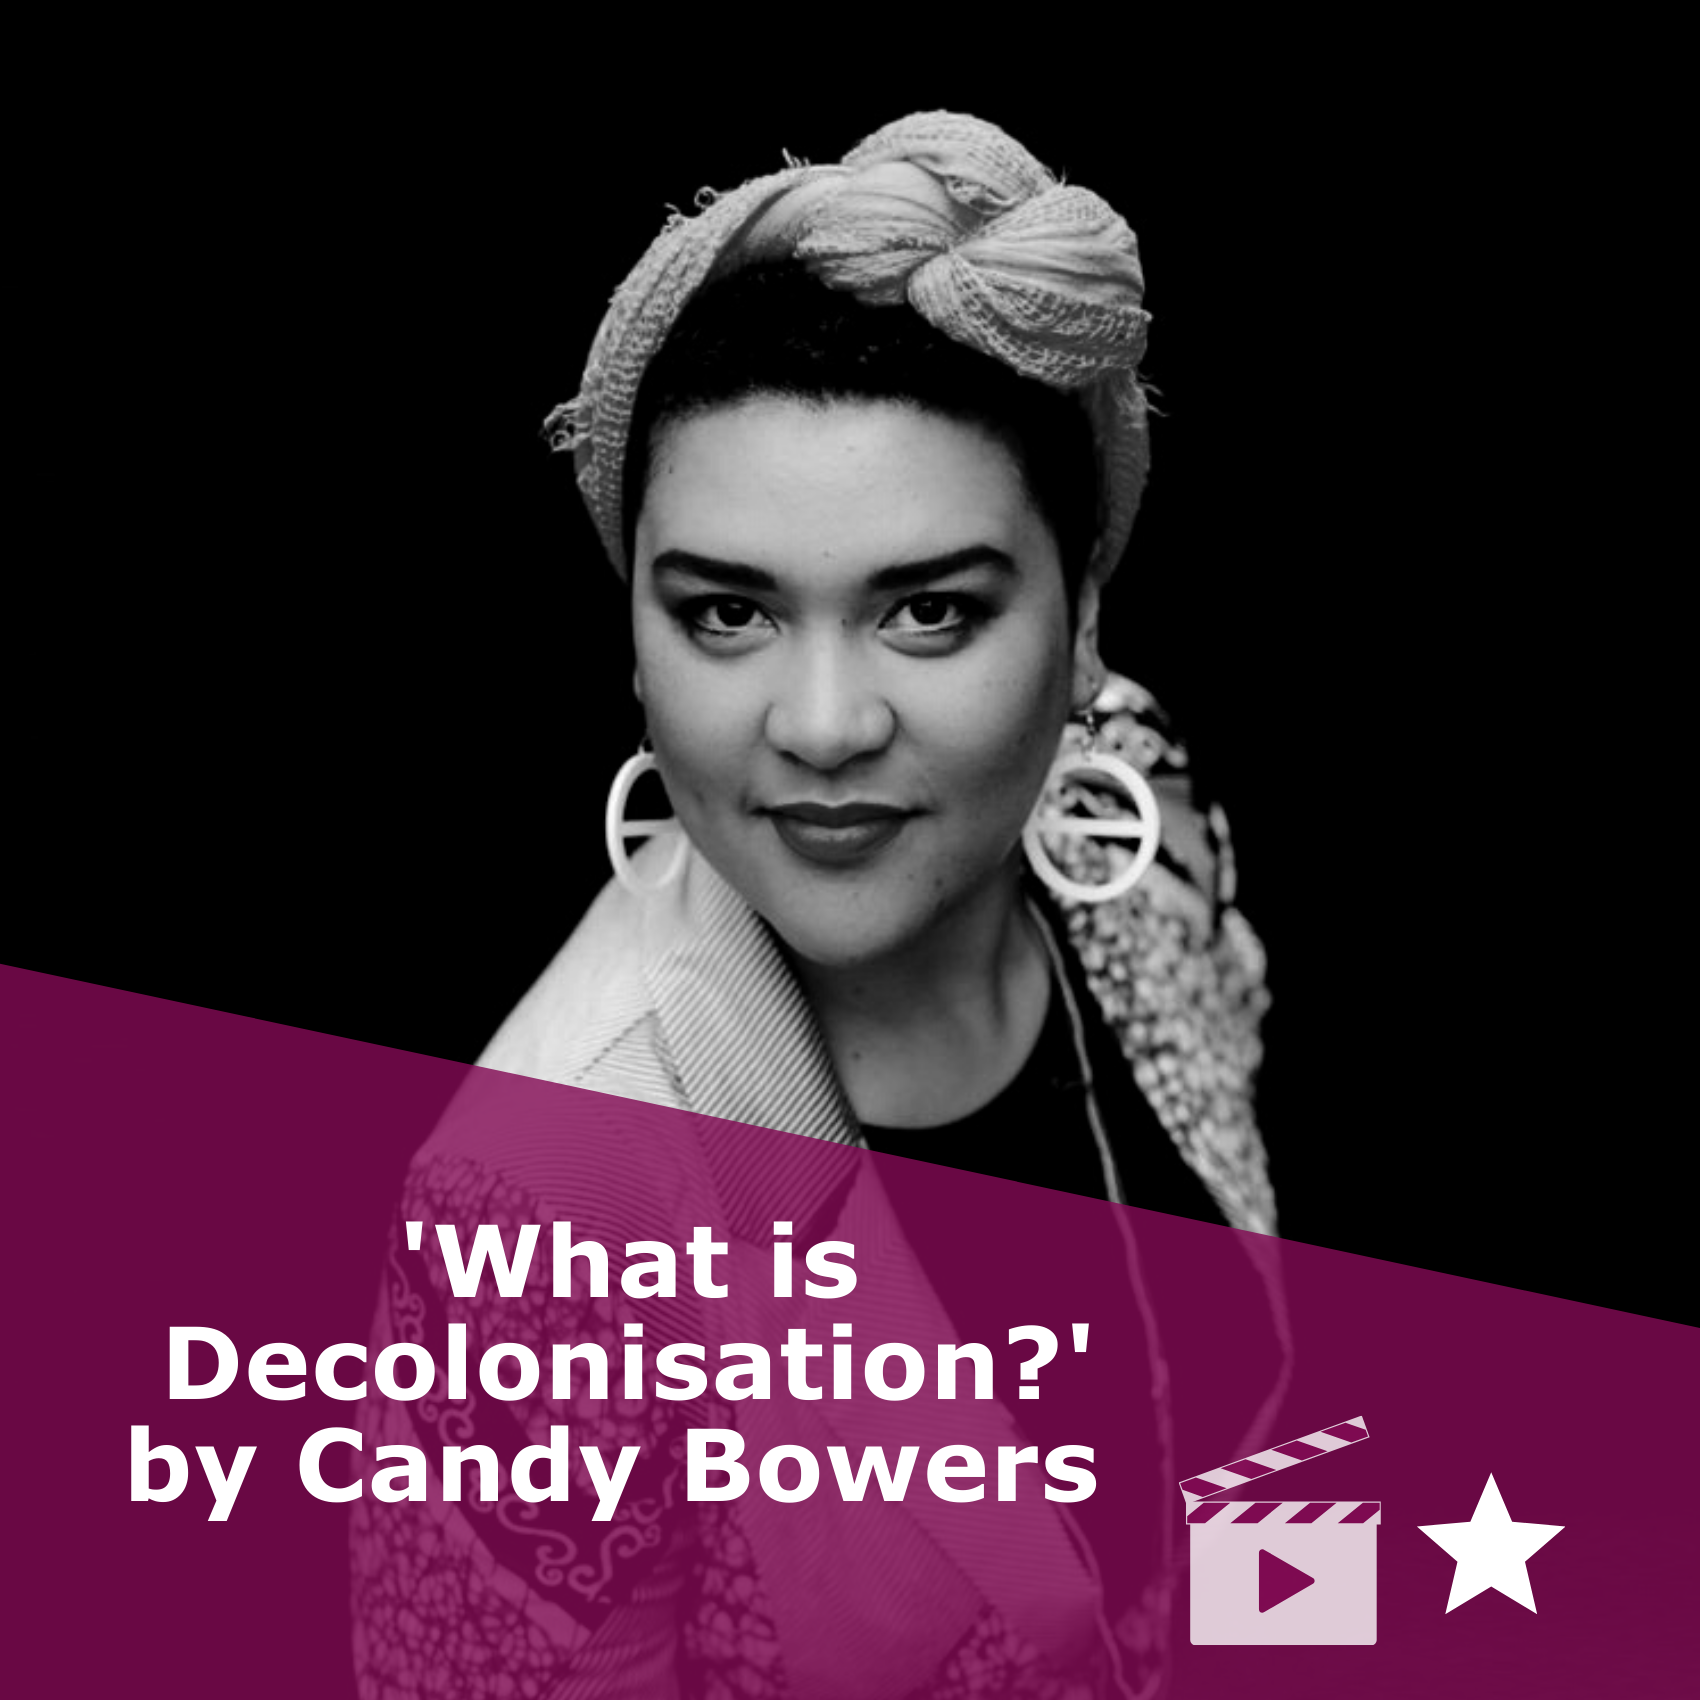 Picture in black and white of Candy Bowers with the title: 'What is Decolonisation?' by Candy Bowers. It is a link to the transcript of the video, and it's rated one star.